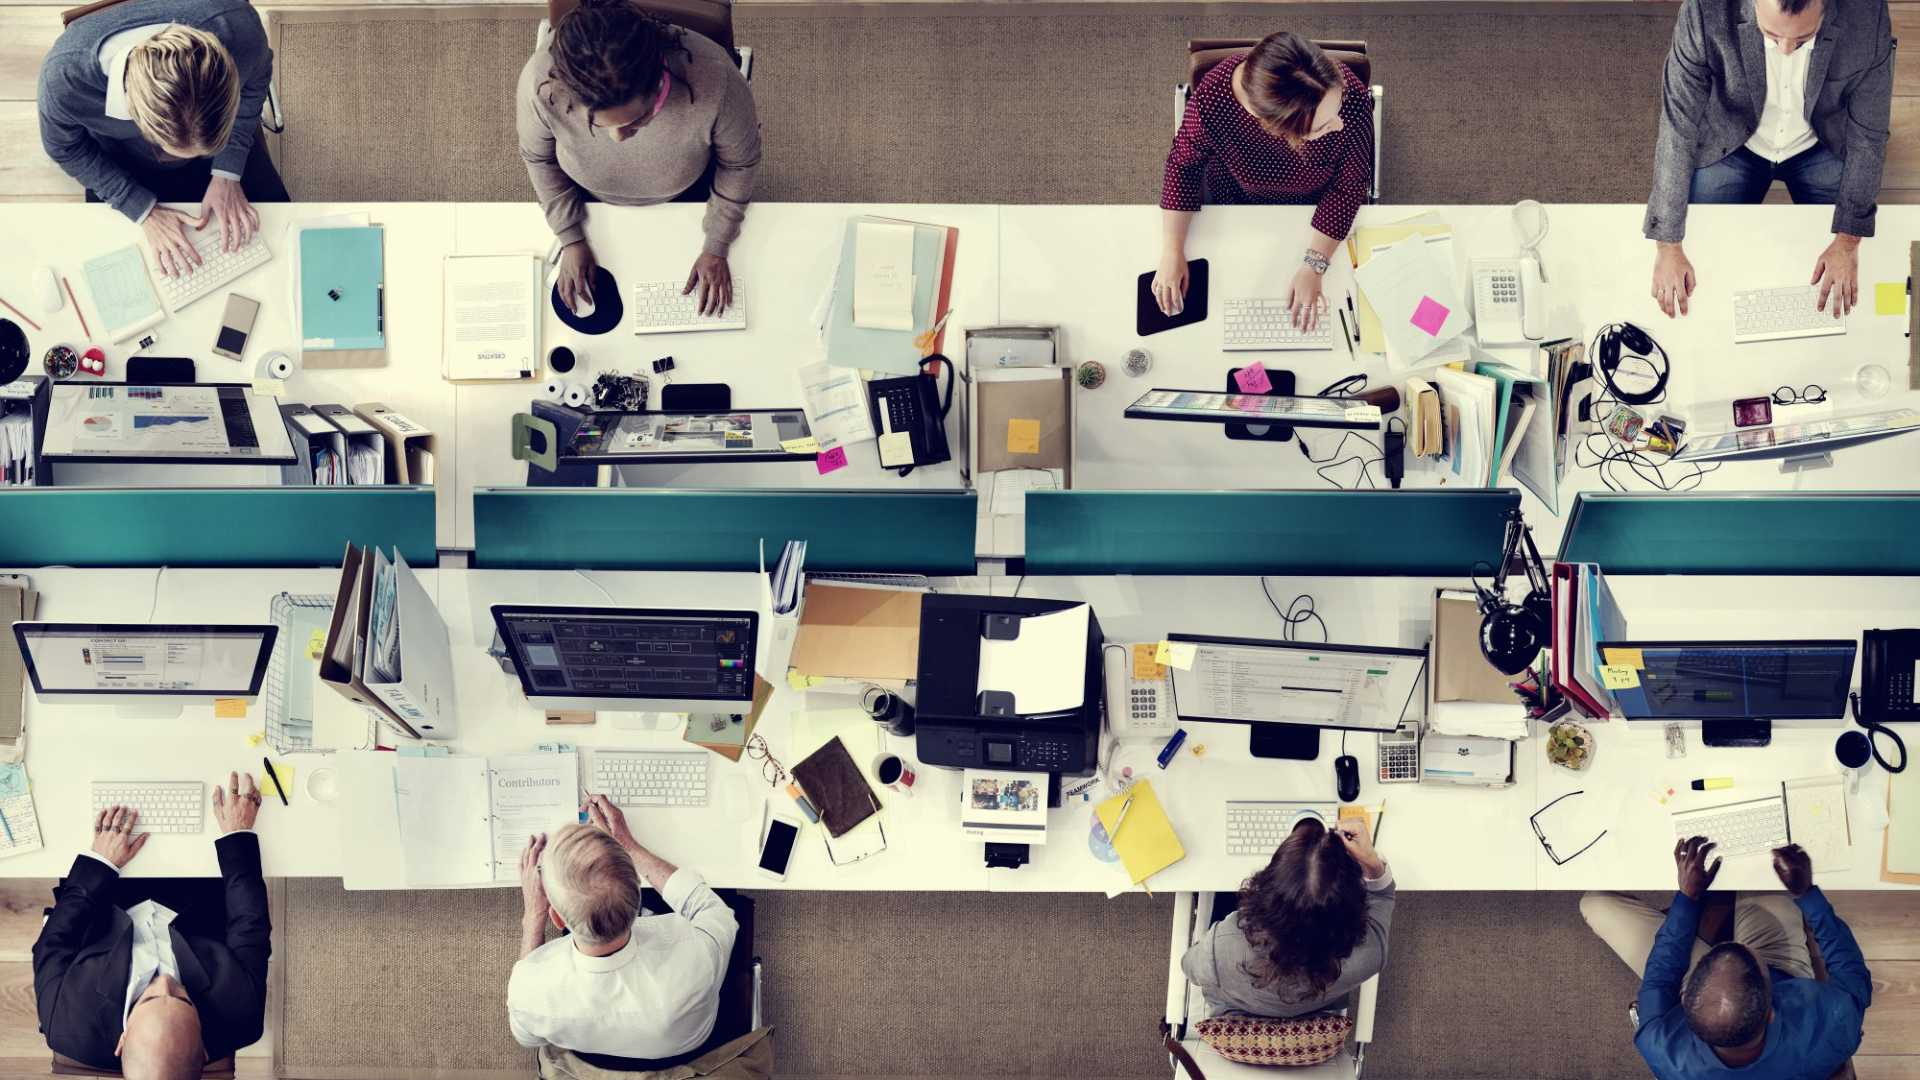 We All Want These 11 Things at Work, Whether We Know It or Not